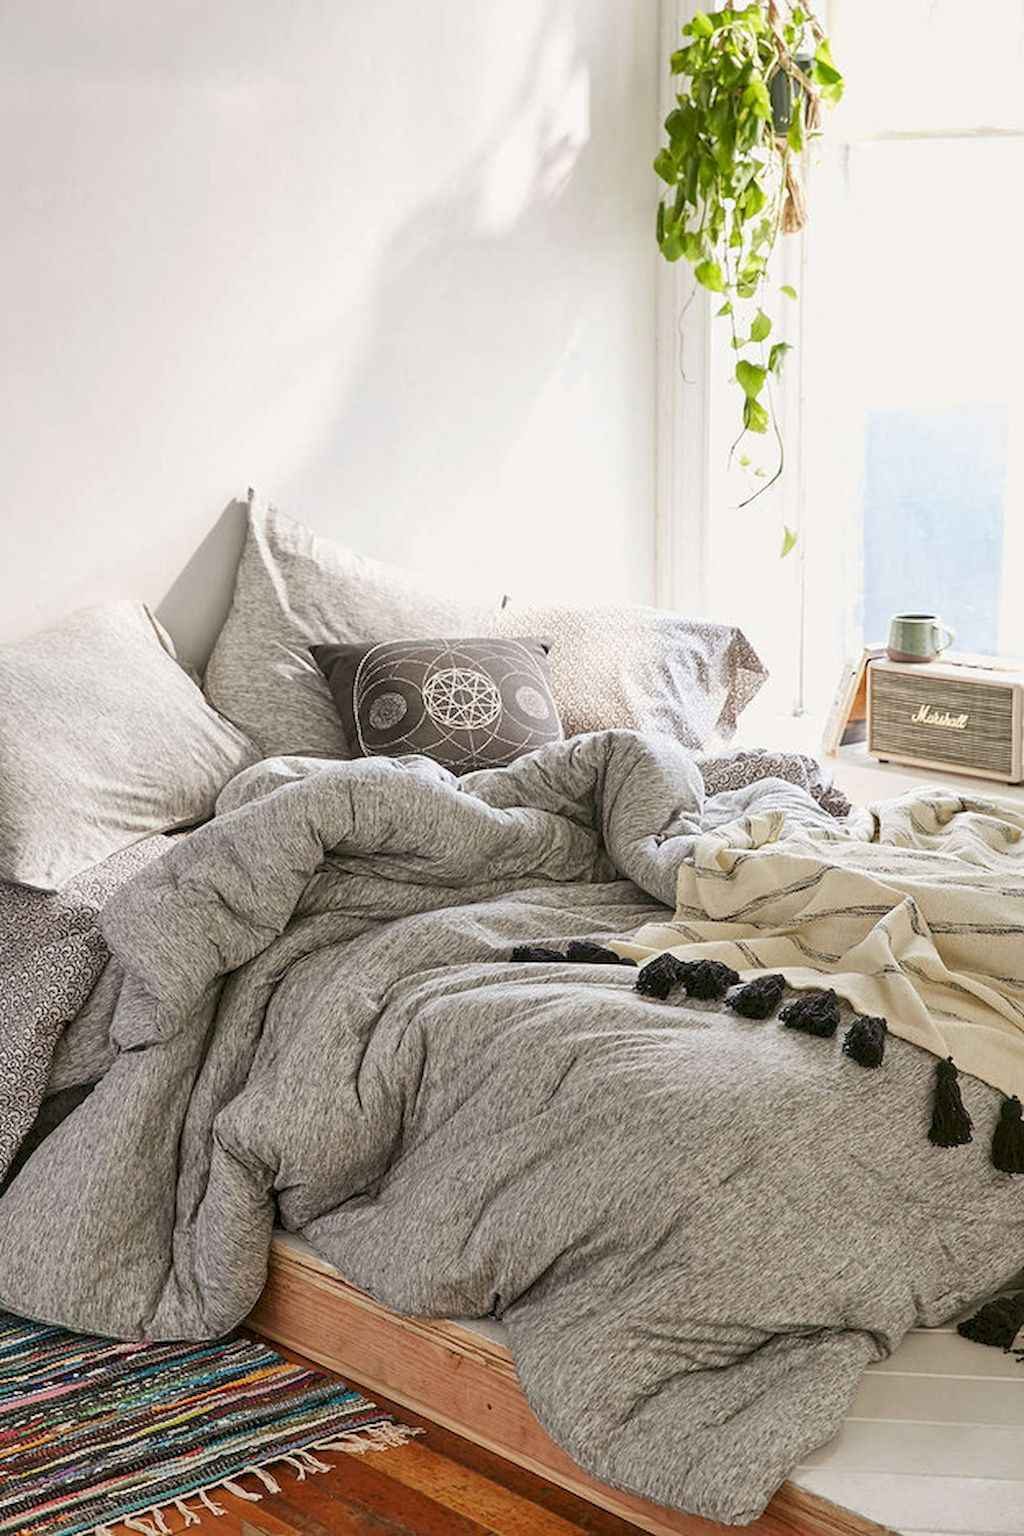 Couples first apartment decorating ideas (61)